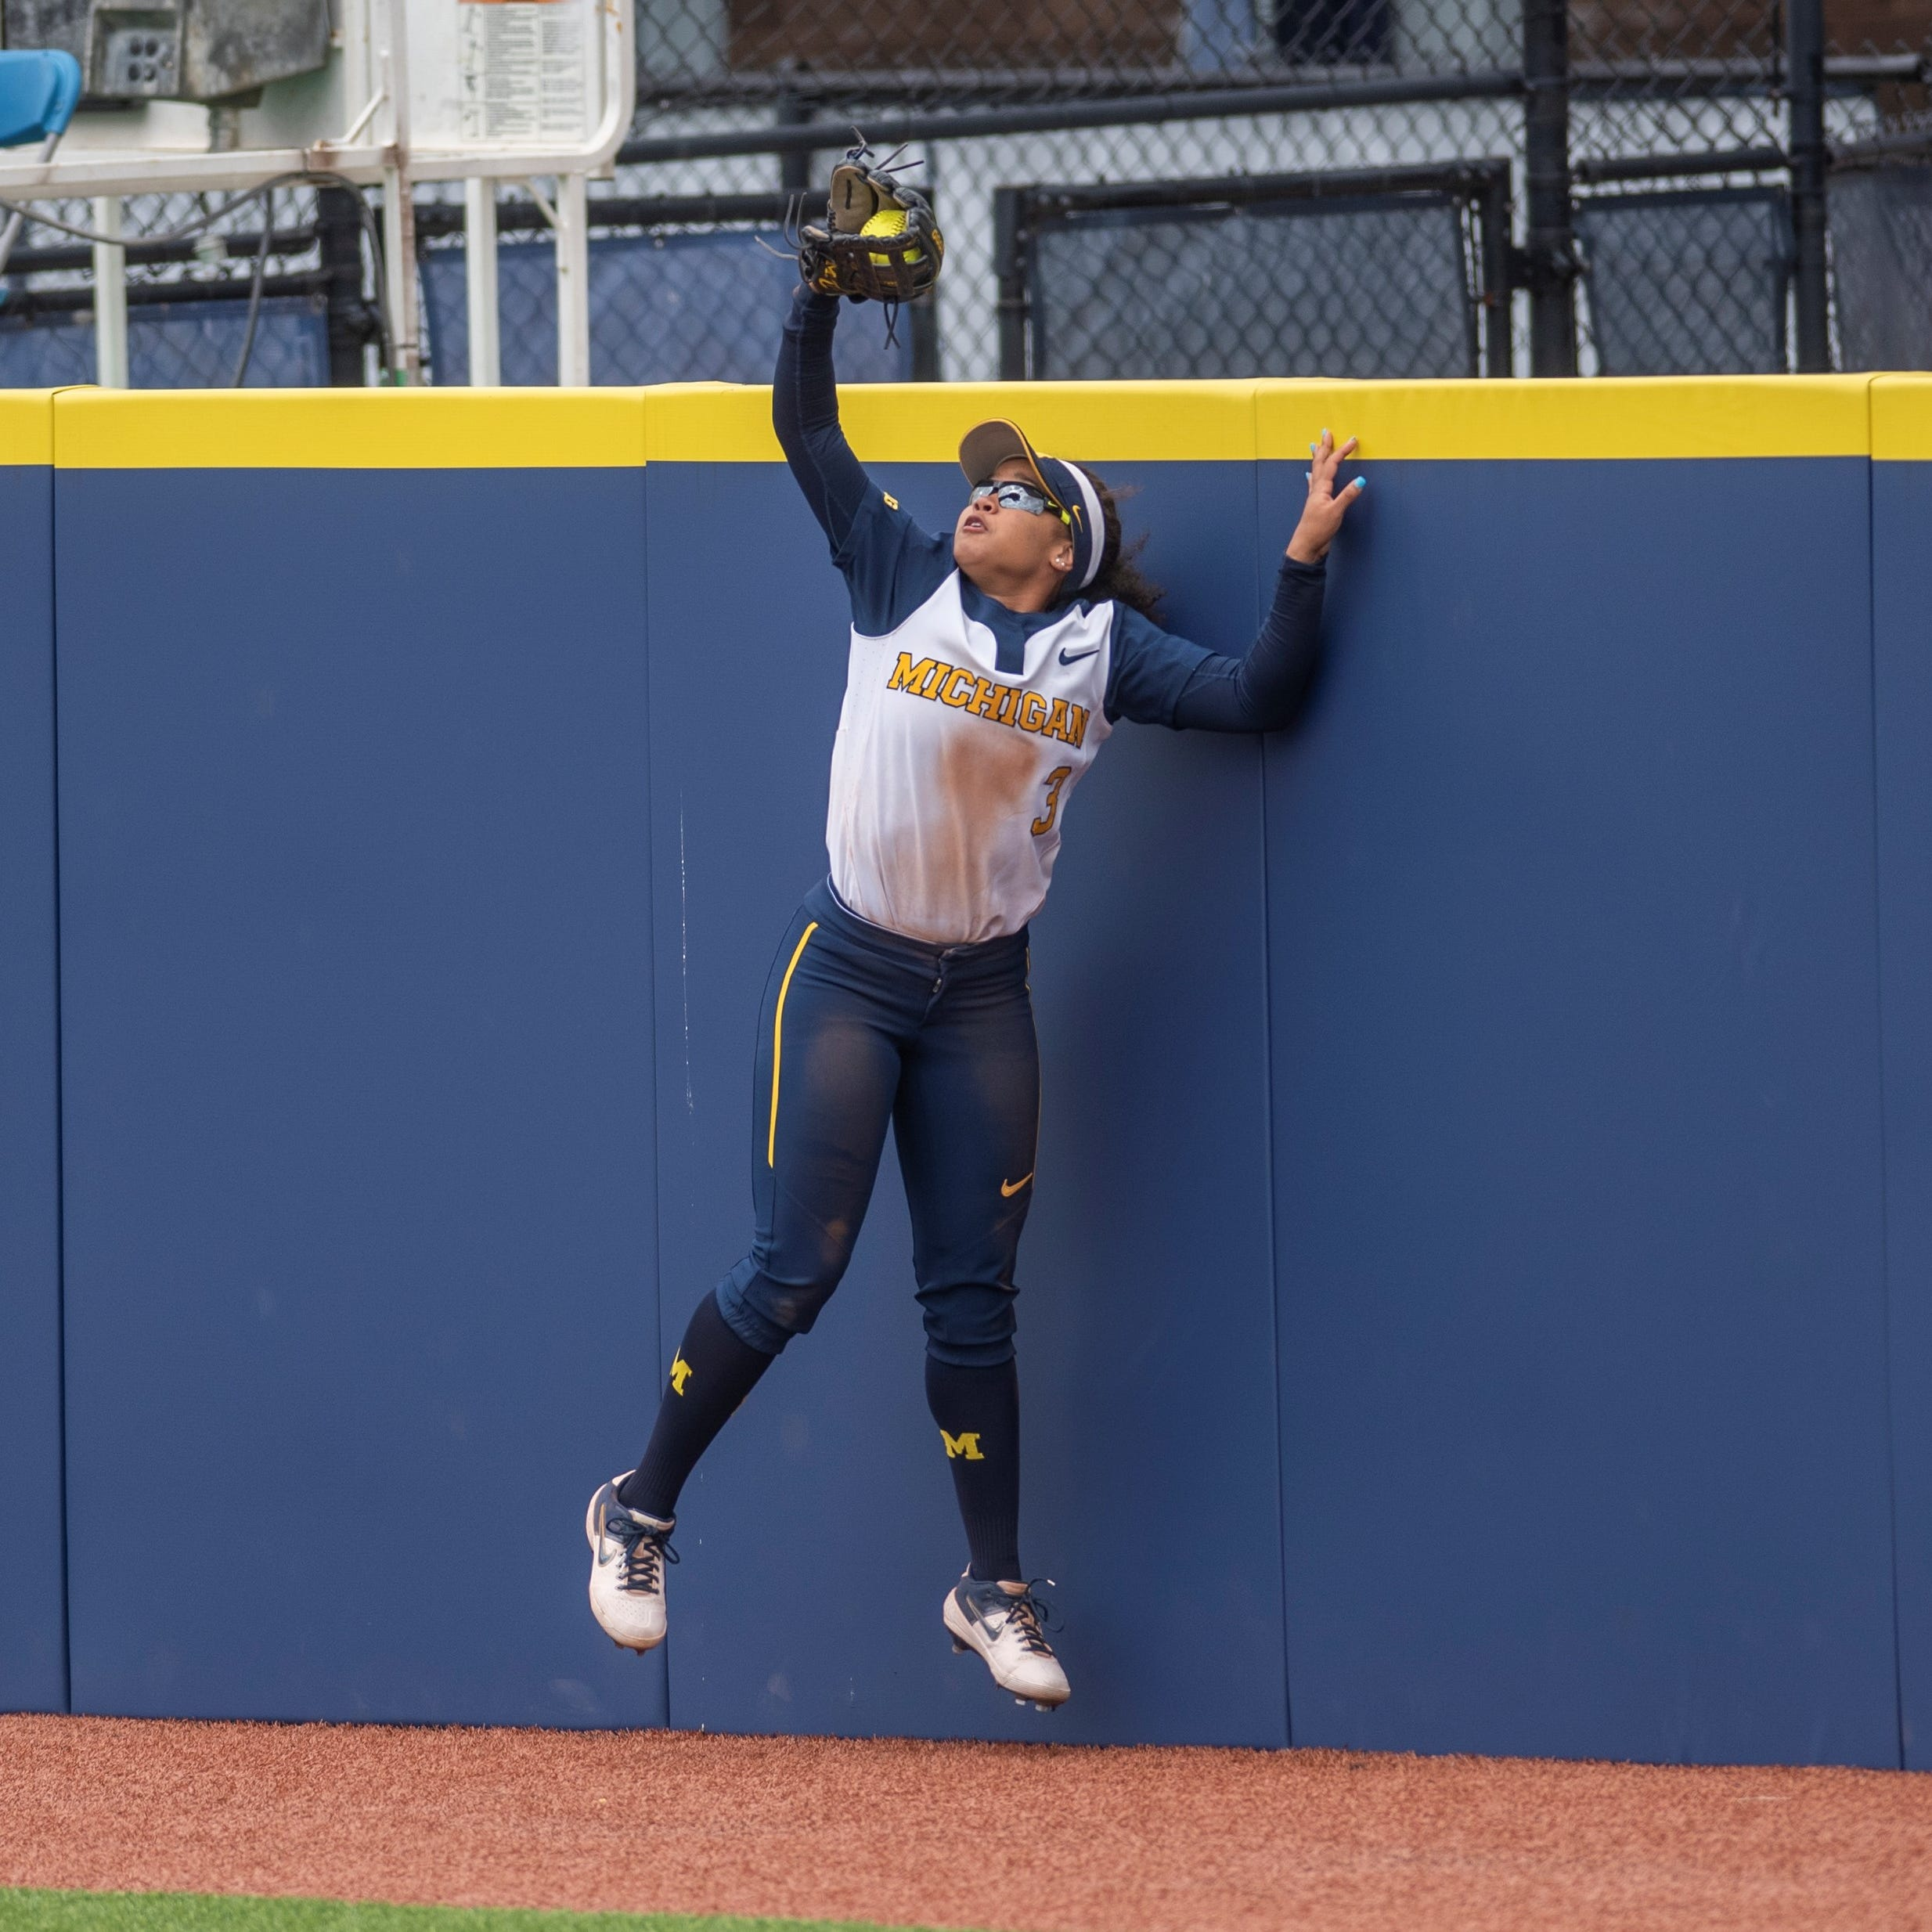 Michigan softball in win-or-go home mode after losing to James Madison